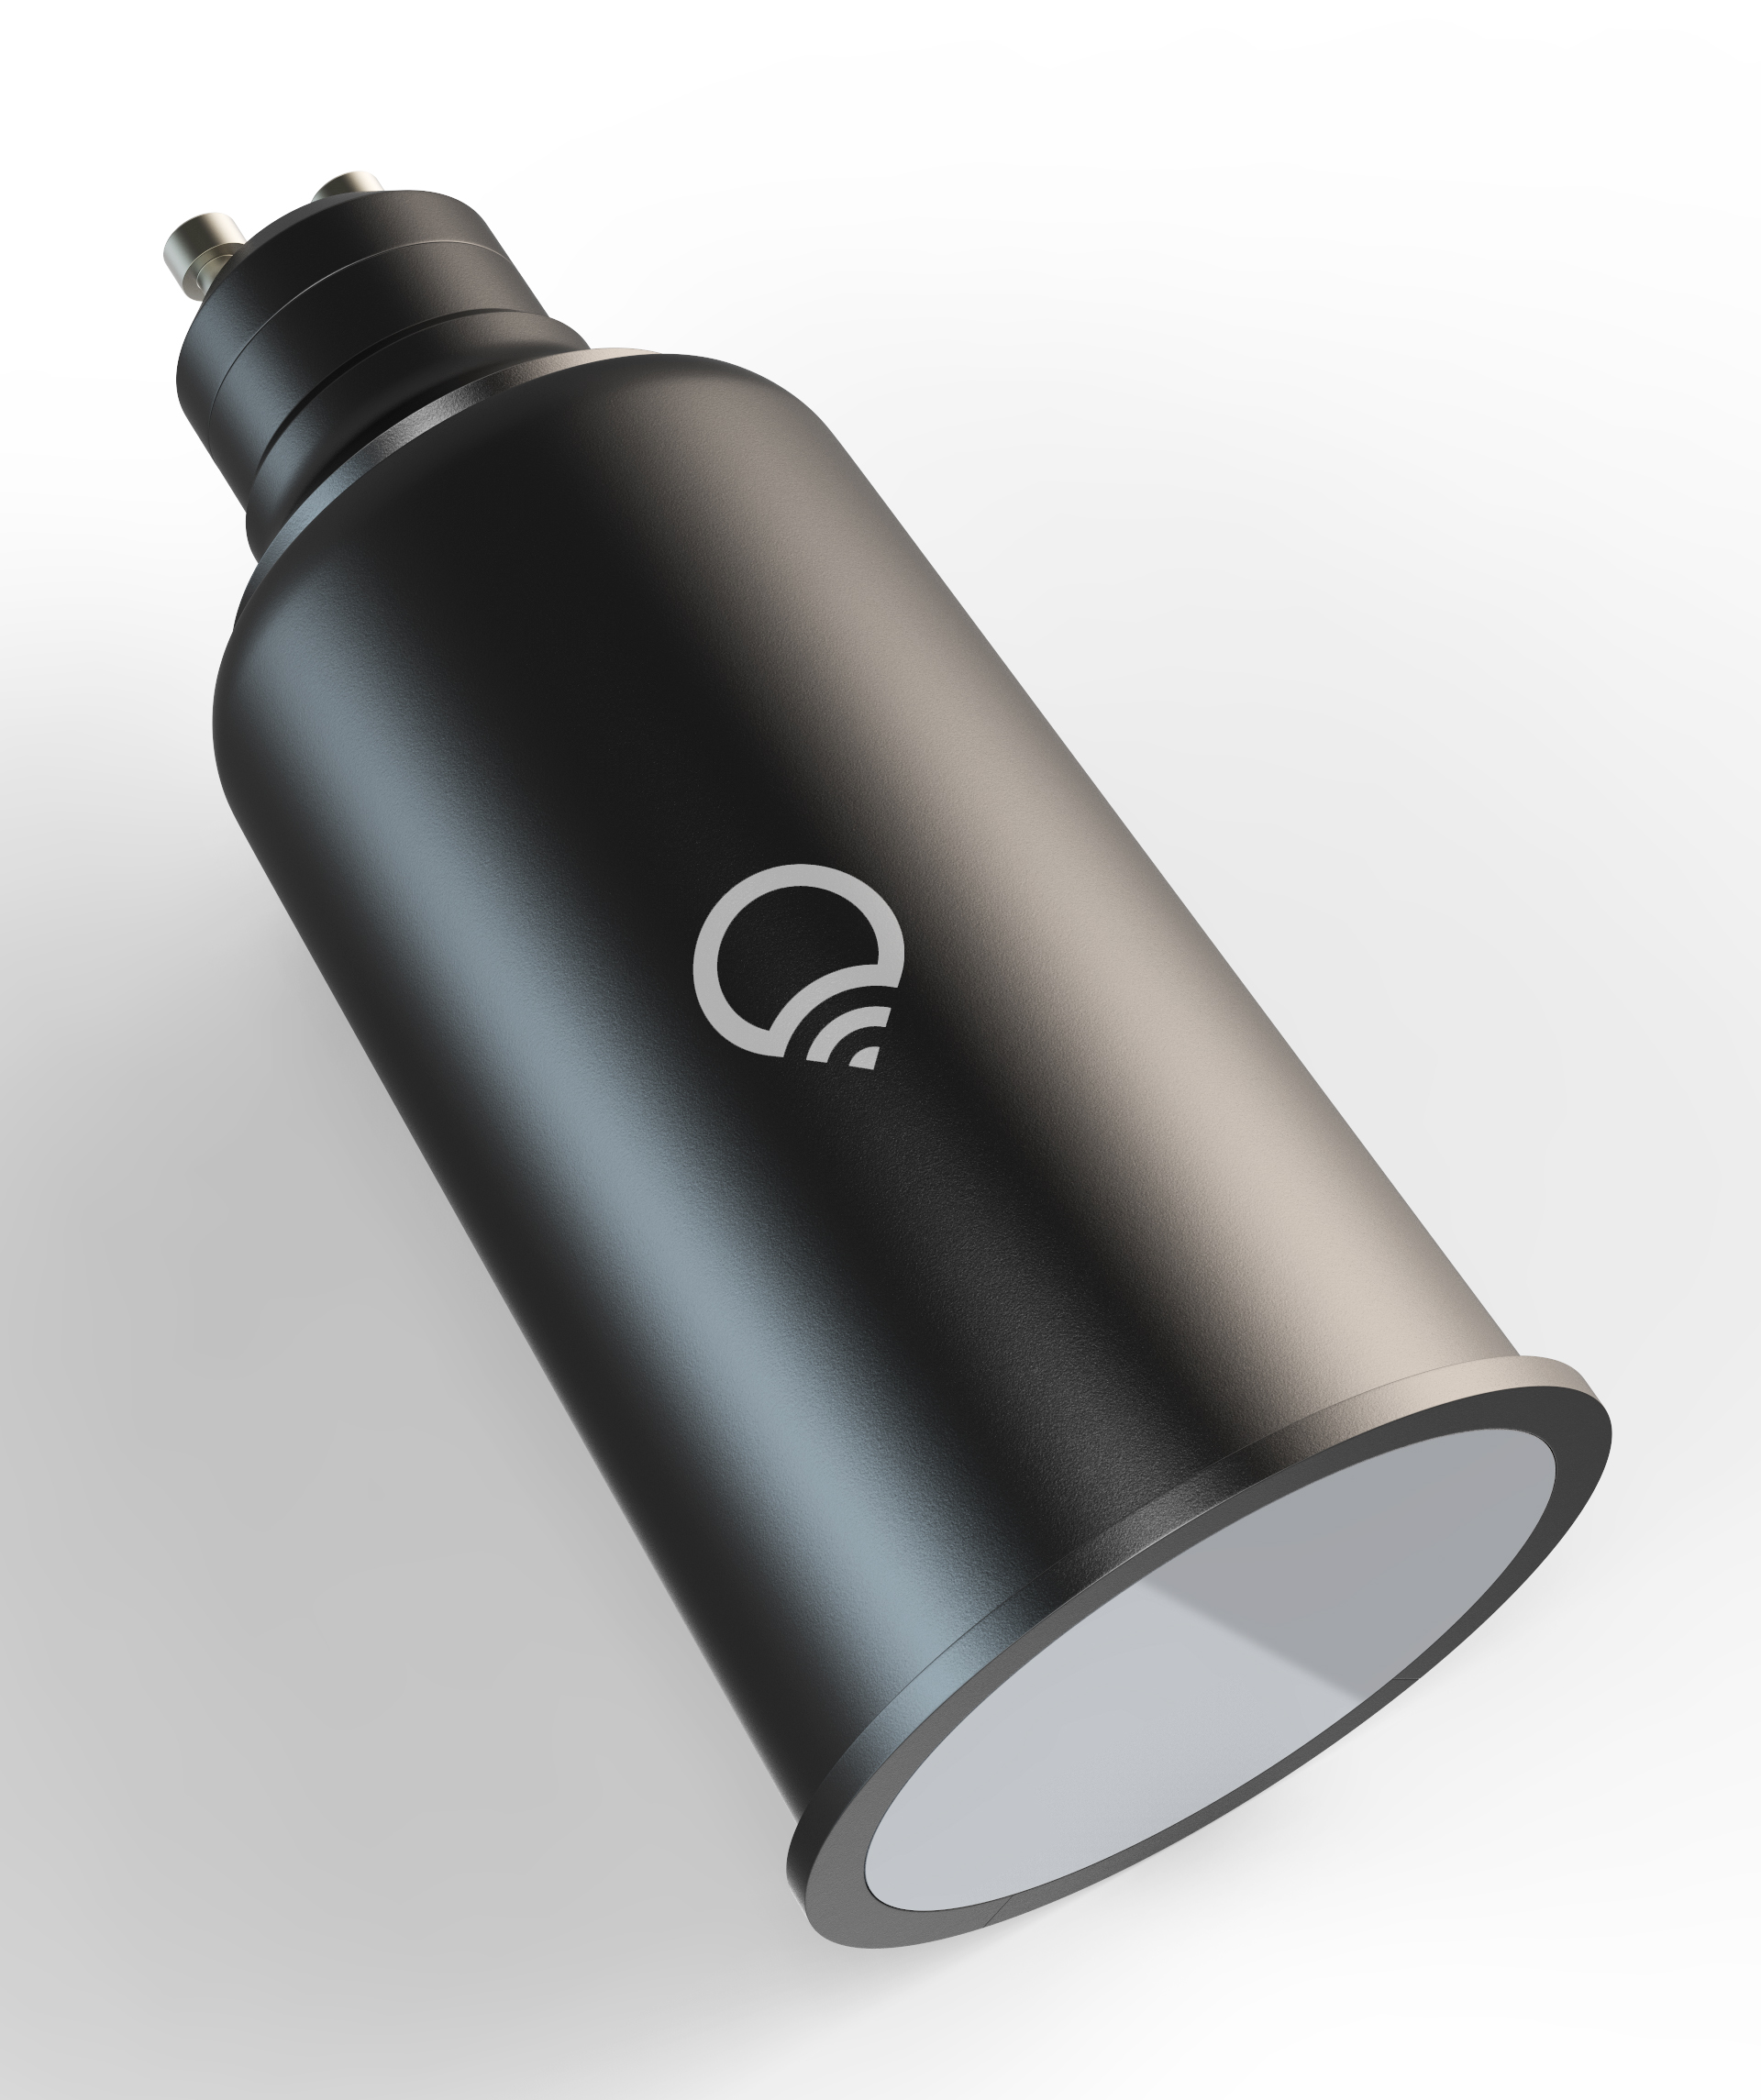 LIFX smart bulb product package rendering on white background